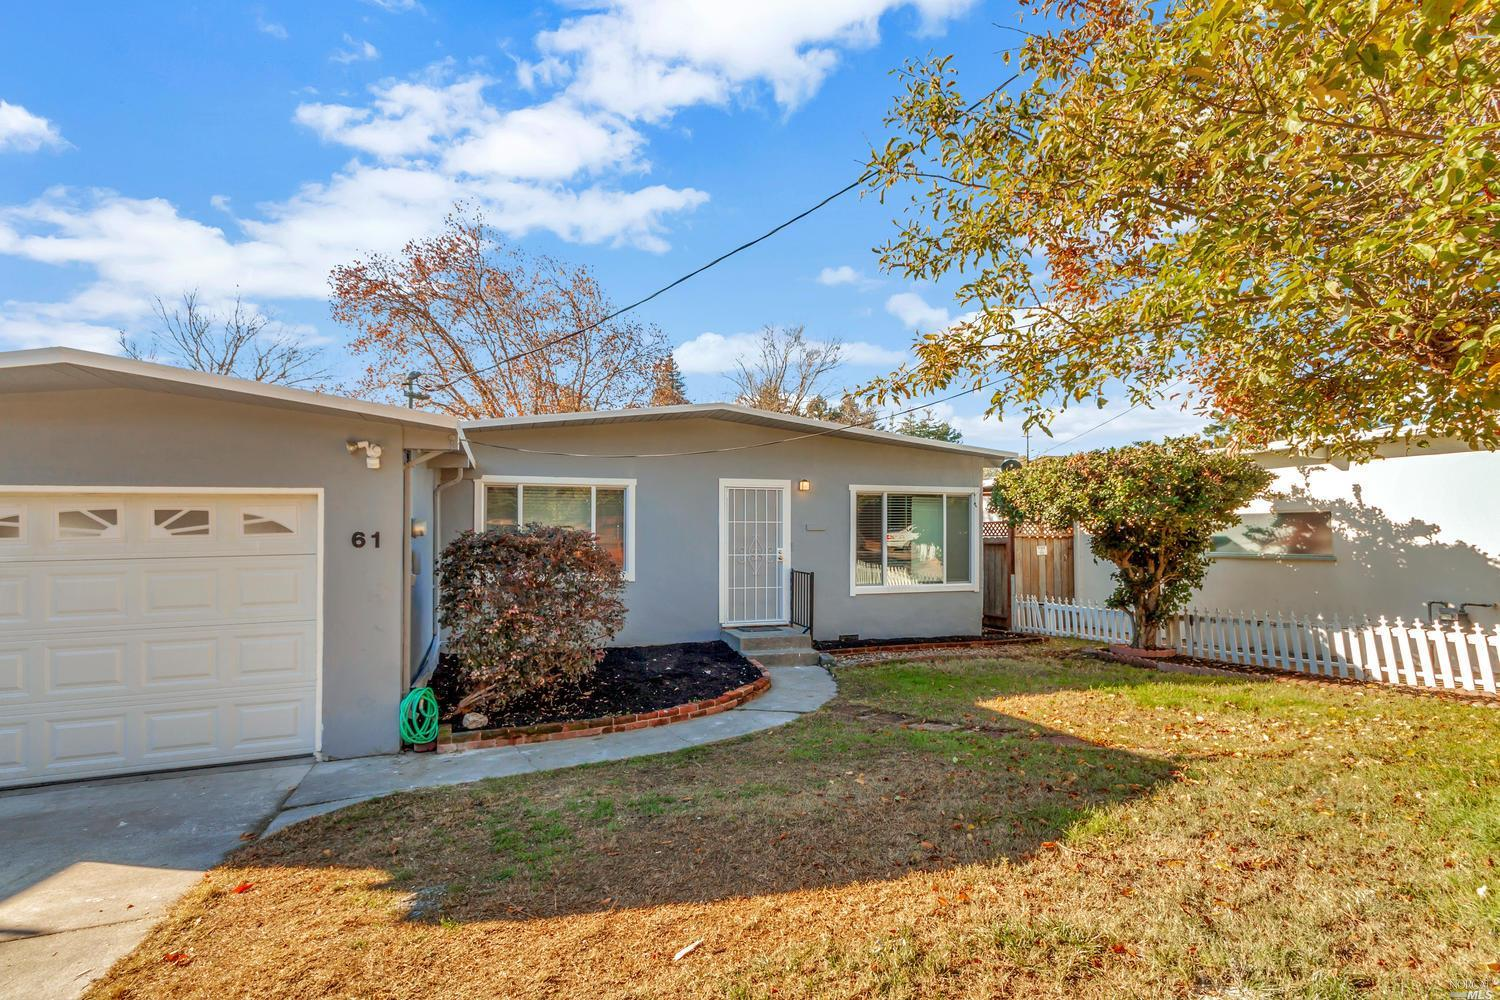 61 Denfield Avenue, Benicia, CA 94510